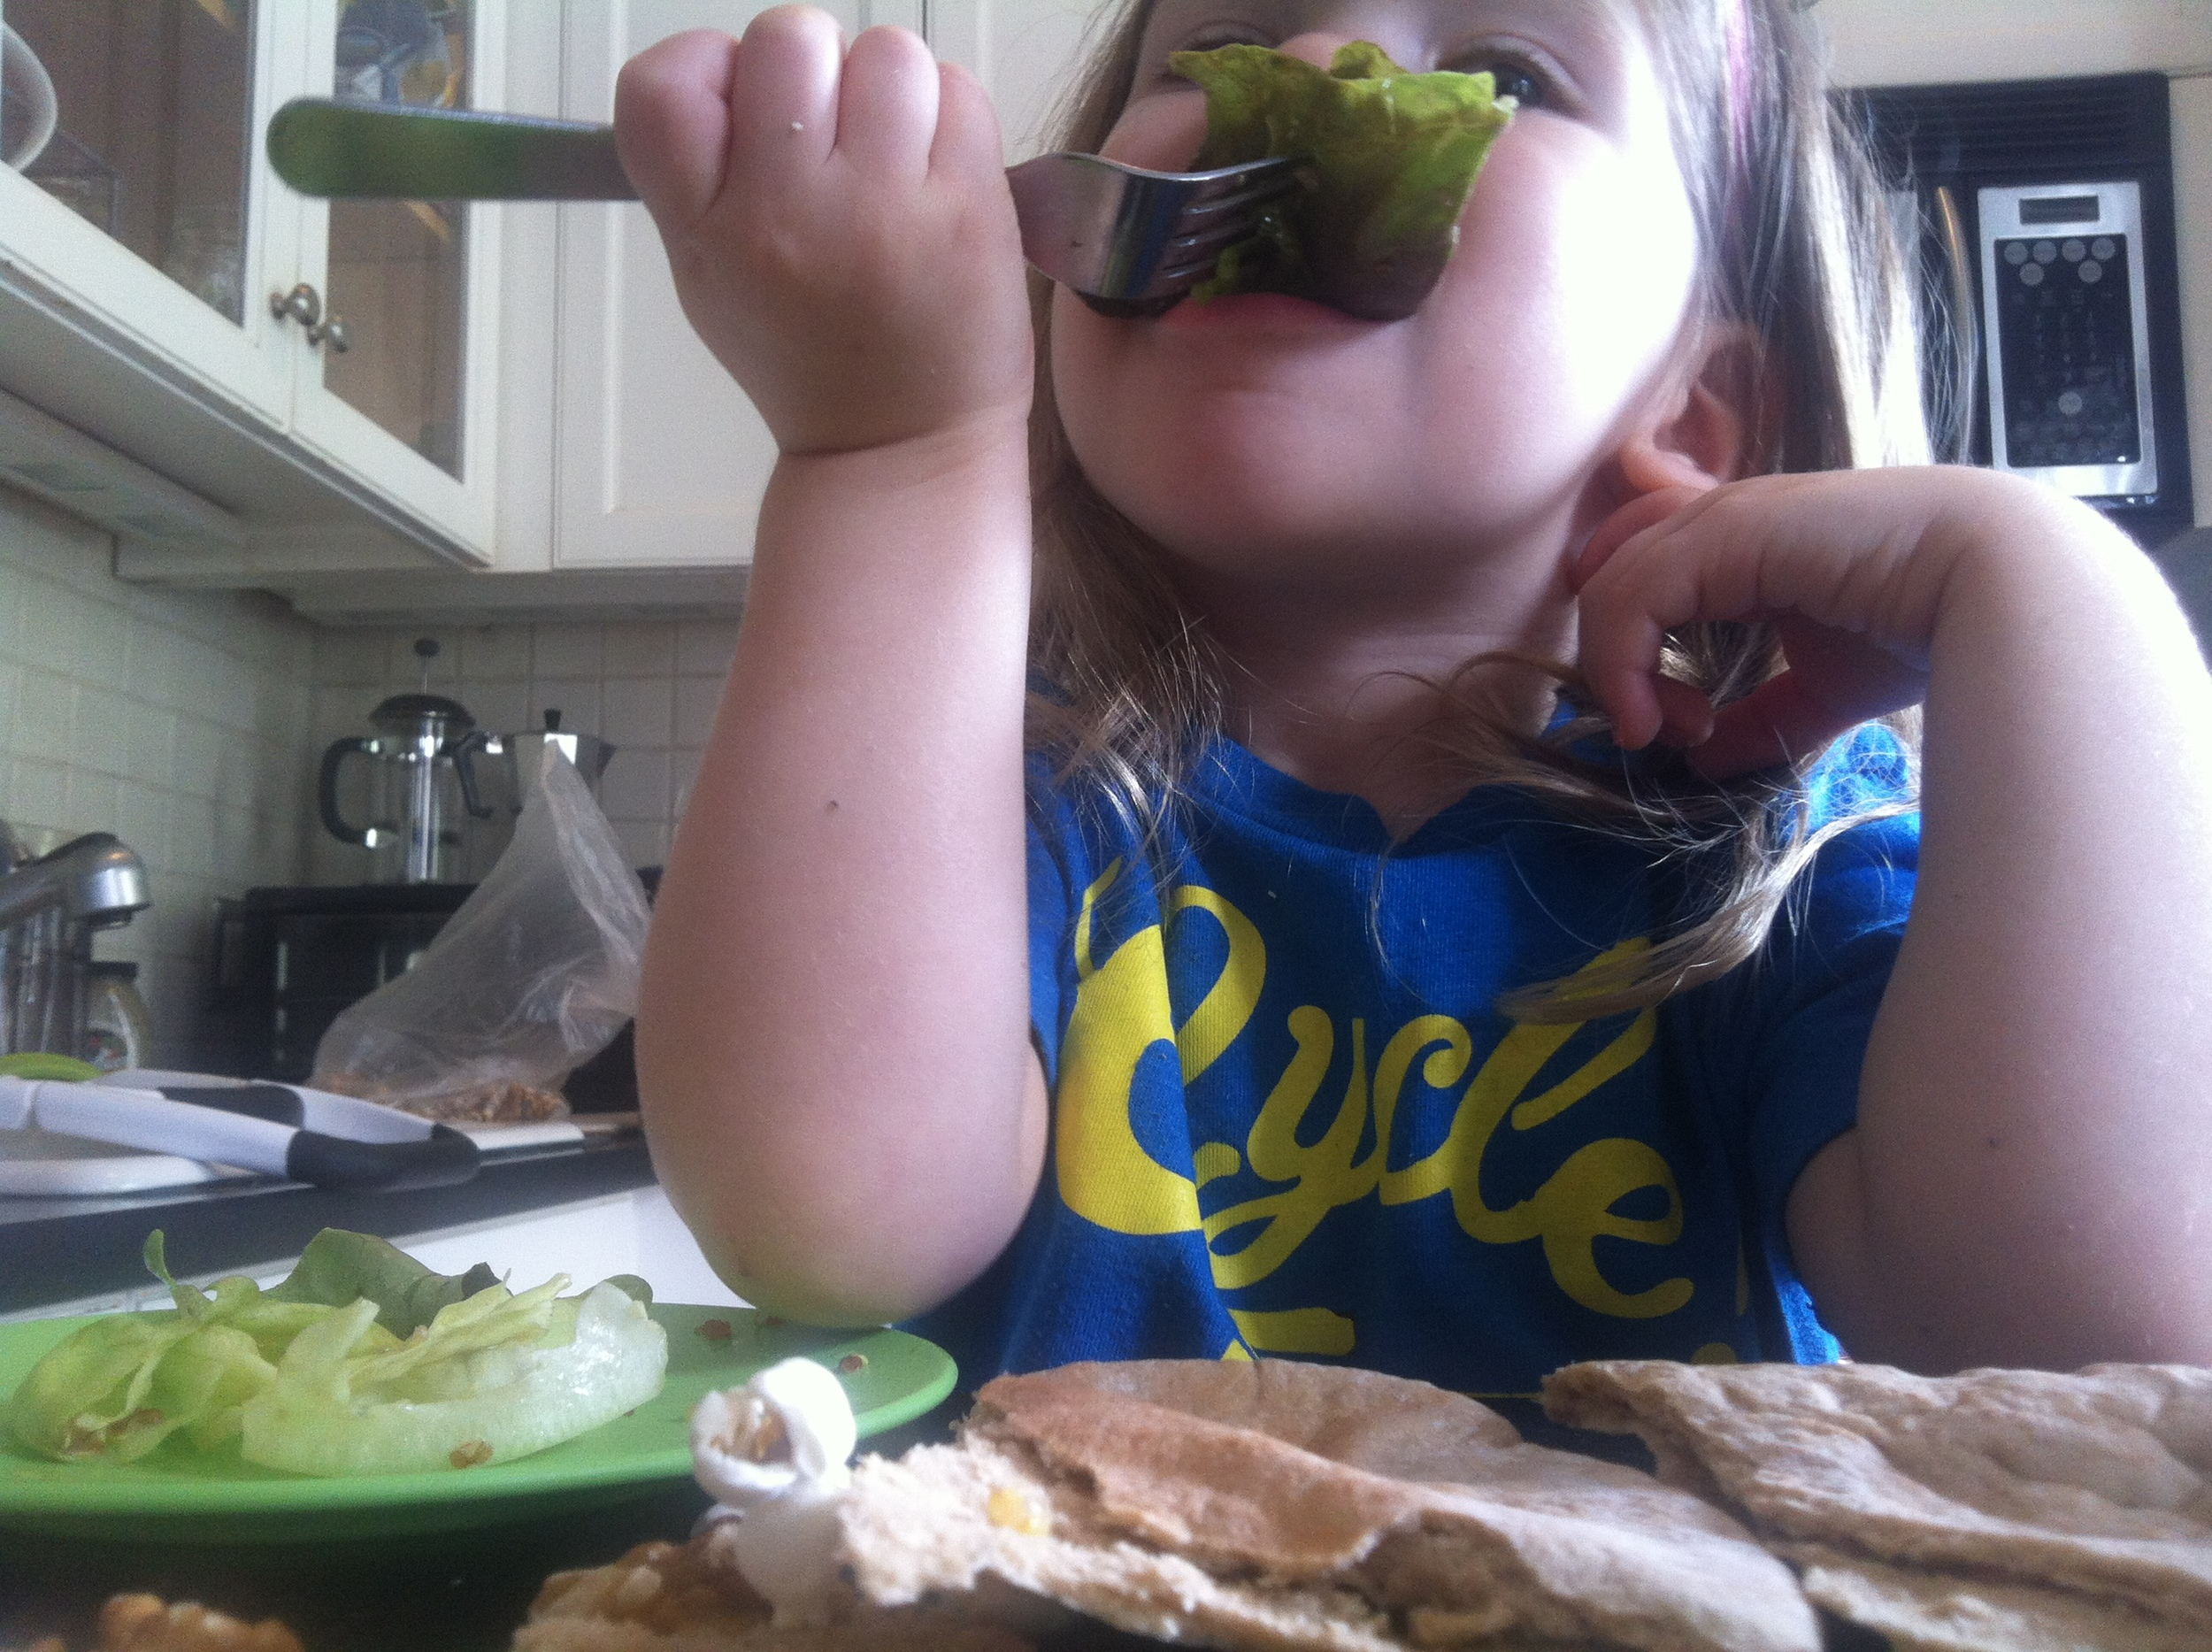 Dinosaurs eat salad, I told her.